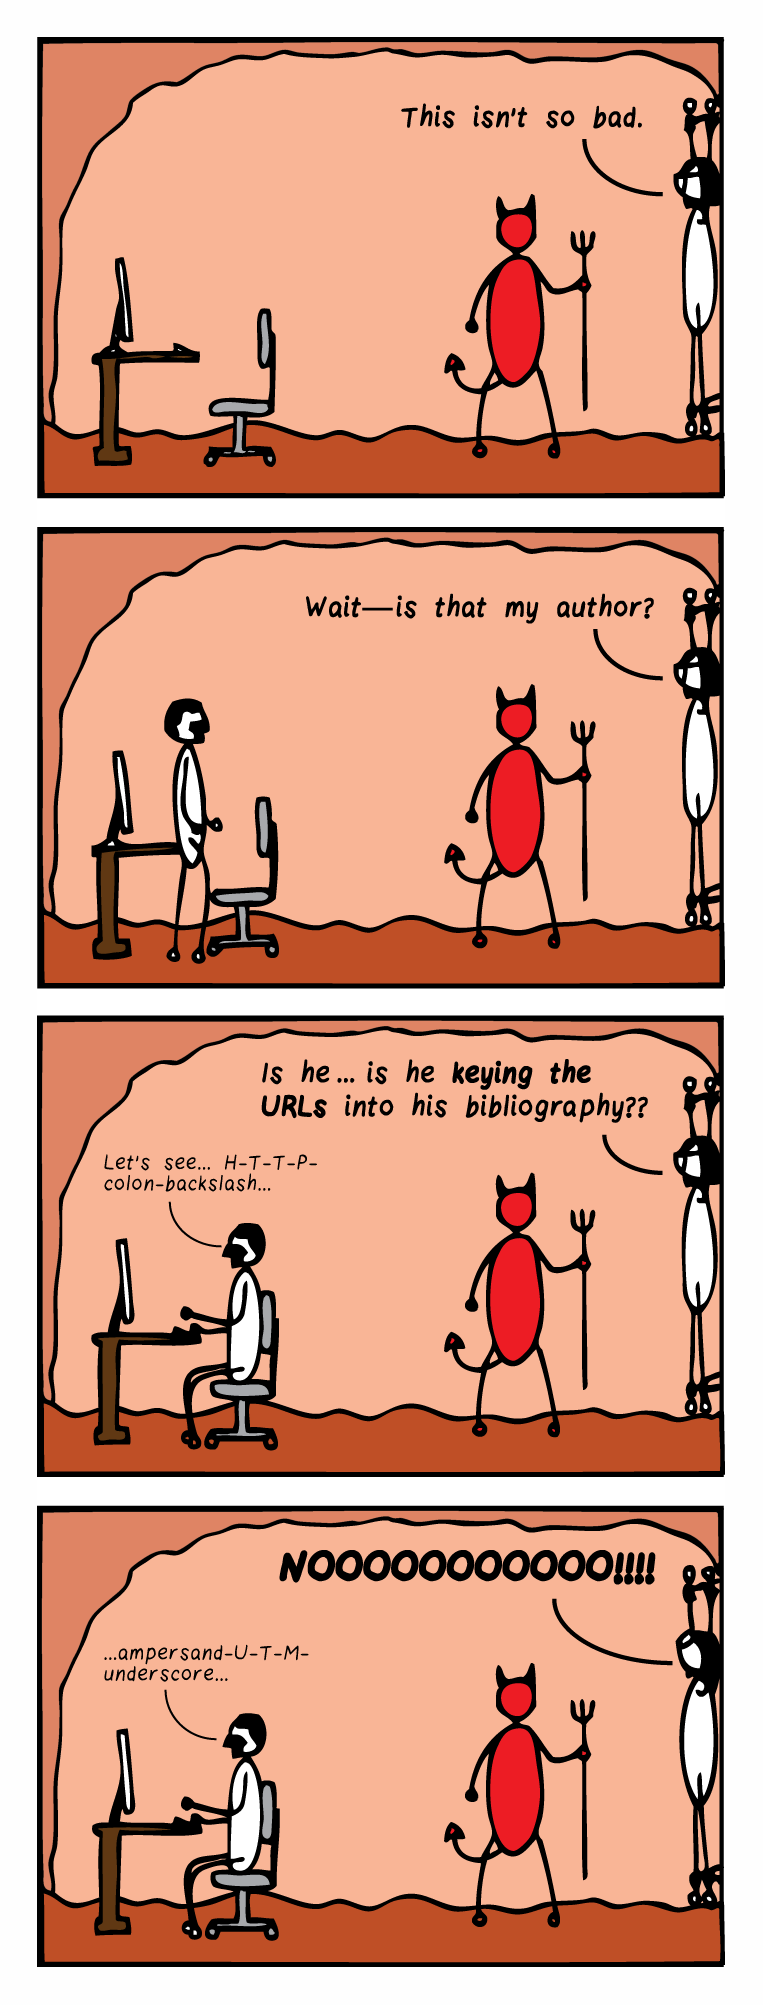 "Four-panel comic strip. Panel 1: Bespectacled editor is chained to the wall in hell while the devil stands by. There is a computer desk in the room. The editor says, ""This isn't so bad."" Panel 2: A man approaches the computer desk. The editor says, ""Wait—is that my author?"" Panel 3: The man is seated at the computer desk and mutters, ""Let's see... H-T-T-P-colon-backslash..."" The editor says, ""Is he…is he keying the URLs into his bibliography??"" Panel 4: The man continues to type, muttering, ""ampersand-U-T-M-underscore…"" The editor tilts her head back and screams, ""NOOOOOOOOOO!!!"""